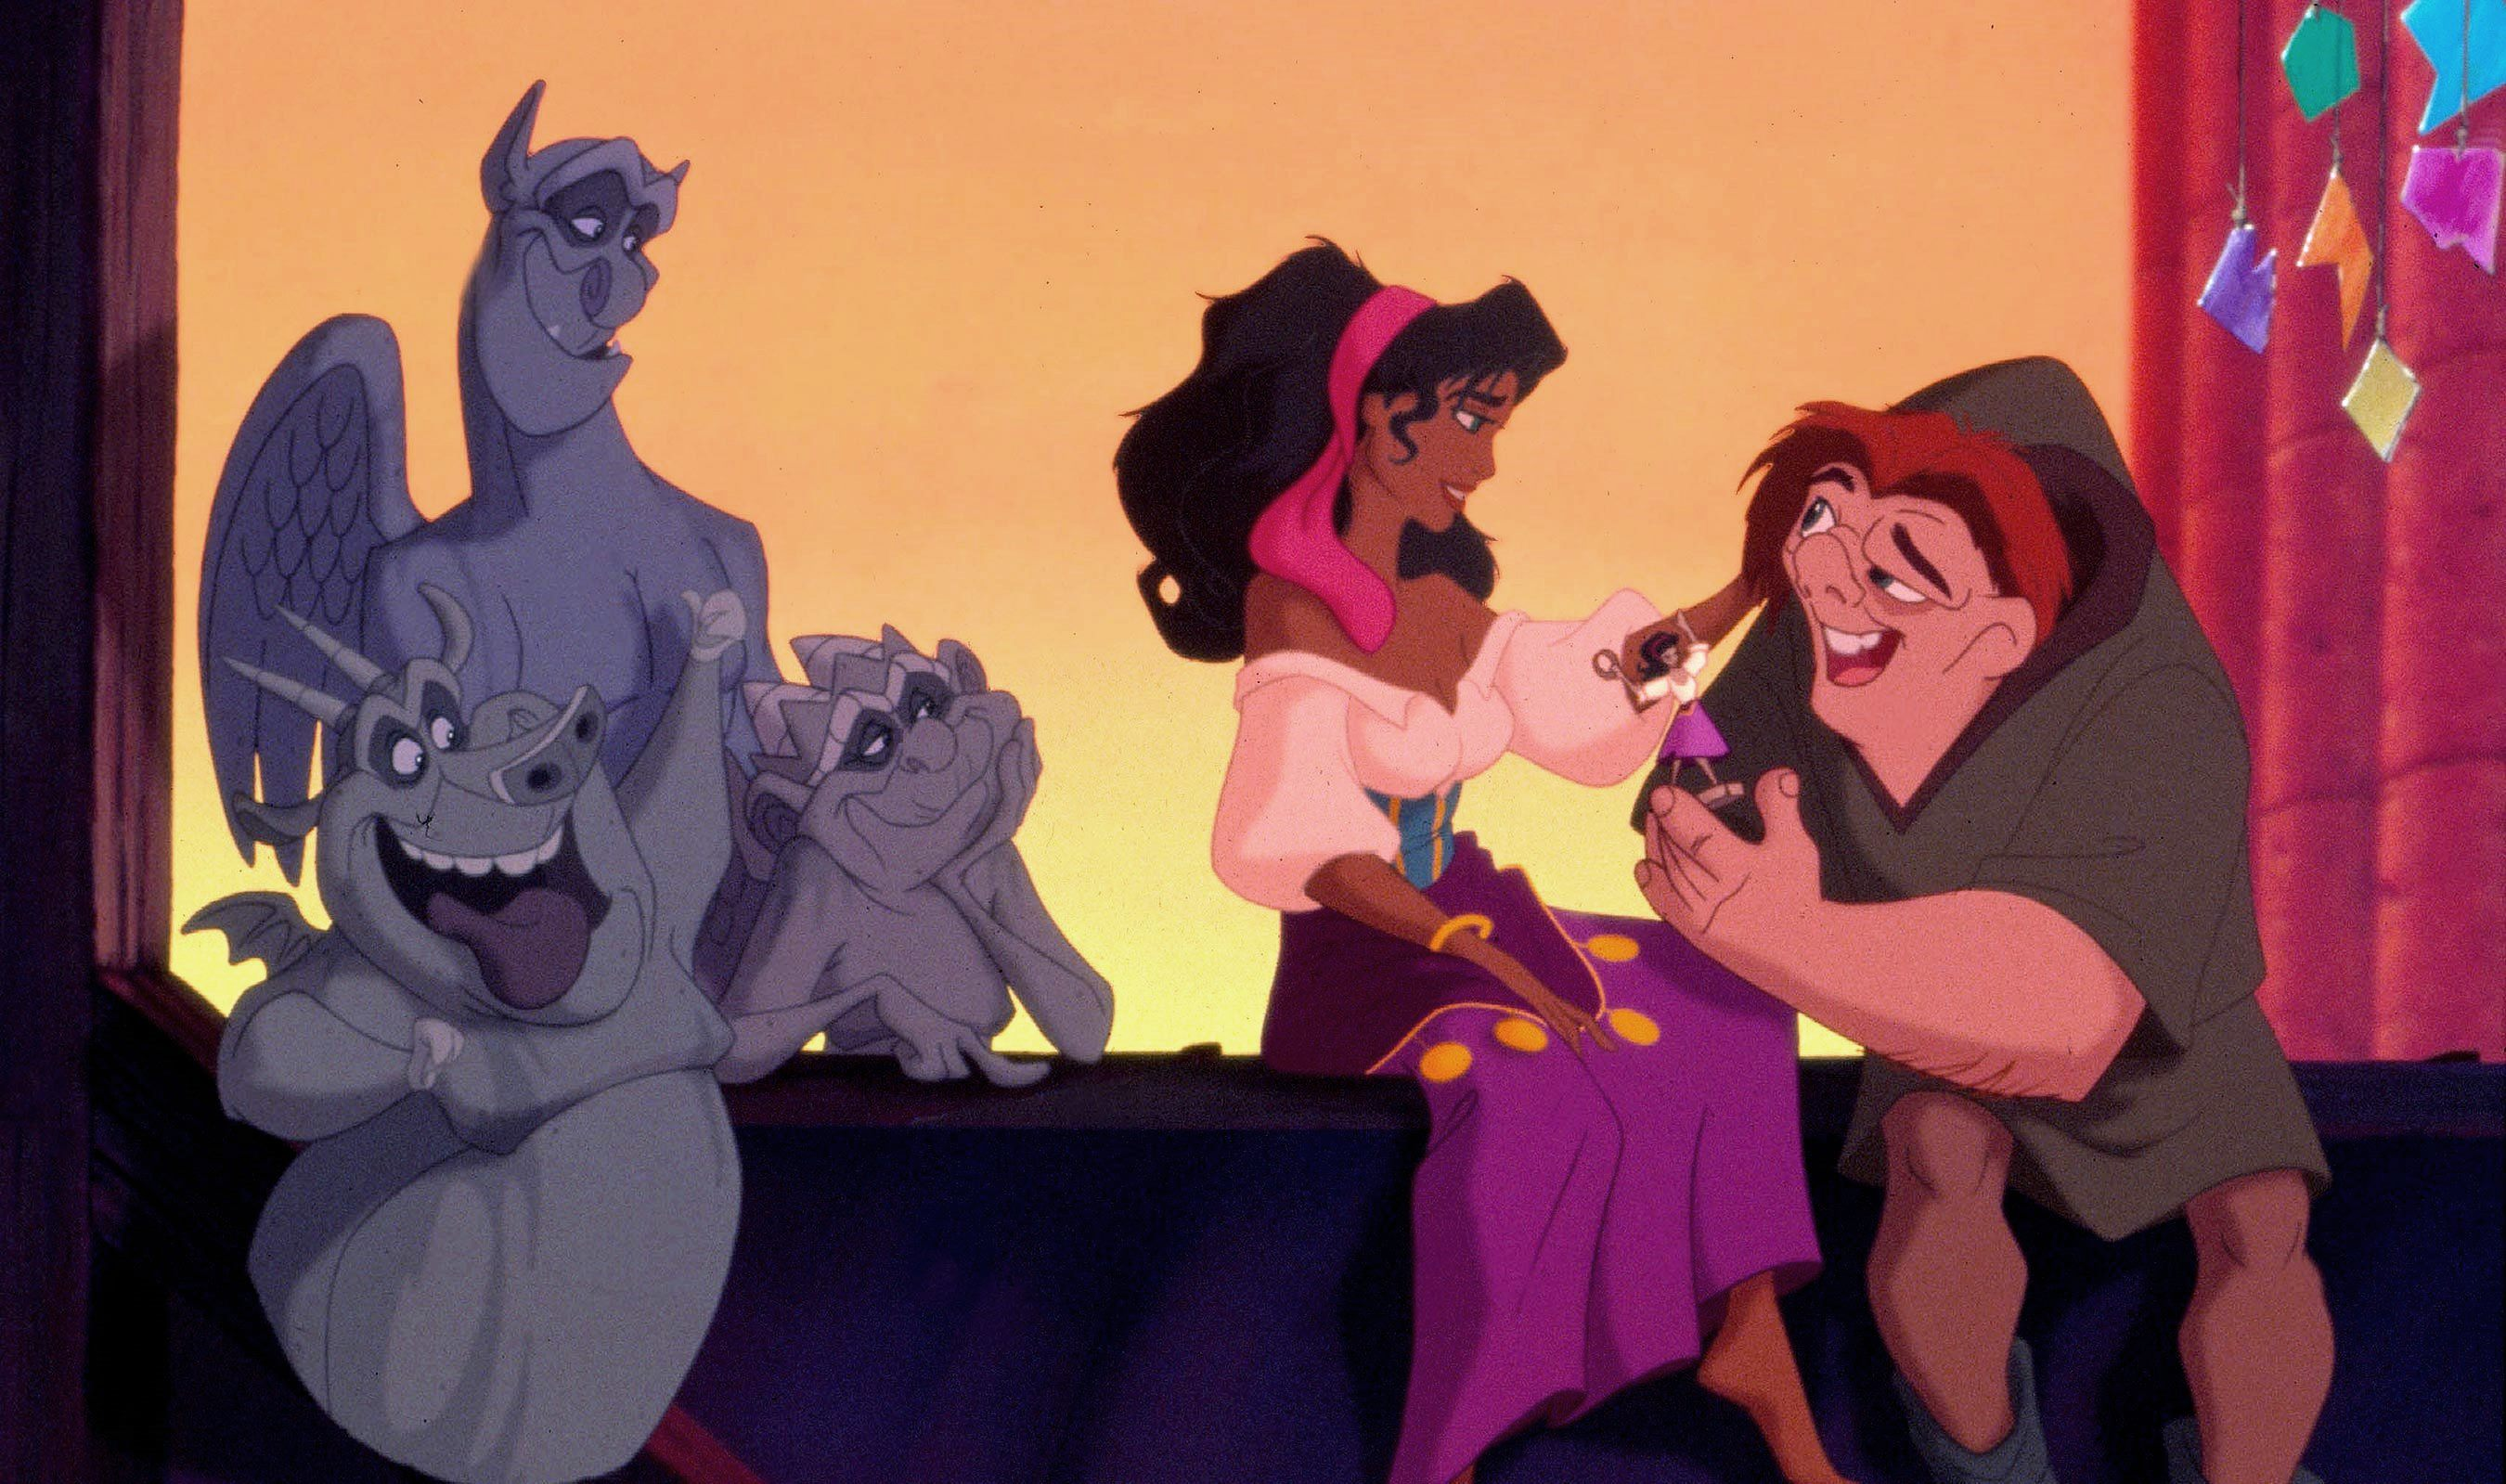 Quasi (voiced by Tom Hulce) expresses affection for Esmeralda (voiced by Demi Moore) as the trio of talking gargoyles look on in The Hunchback of Notre Dame (1996)